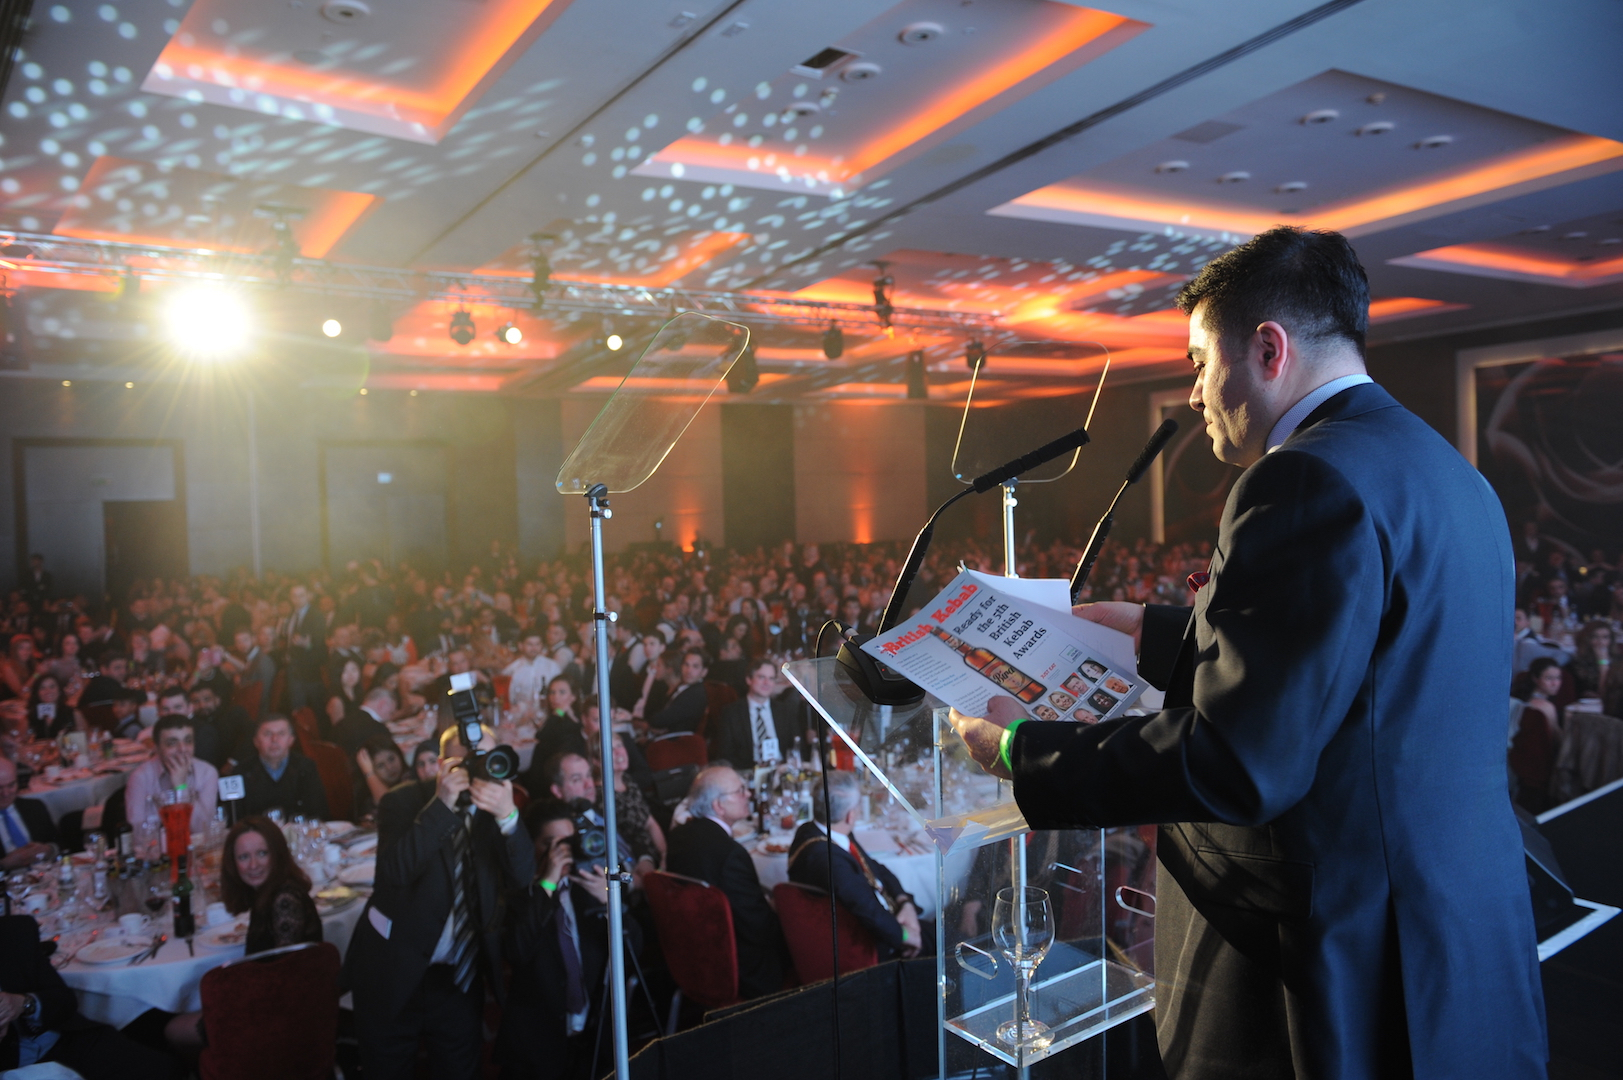 British Kebab Awards Founder Ibrahim Dogus' Speech at the Fifth Annual British Kebab Awards